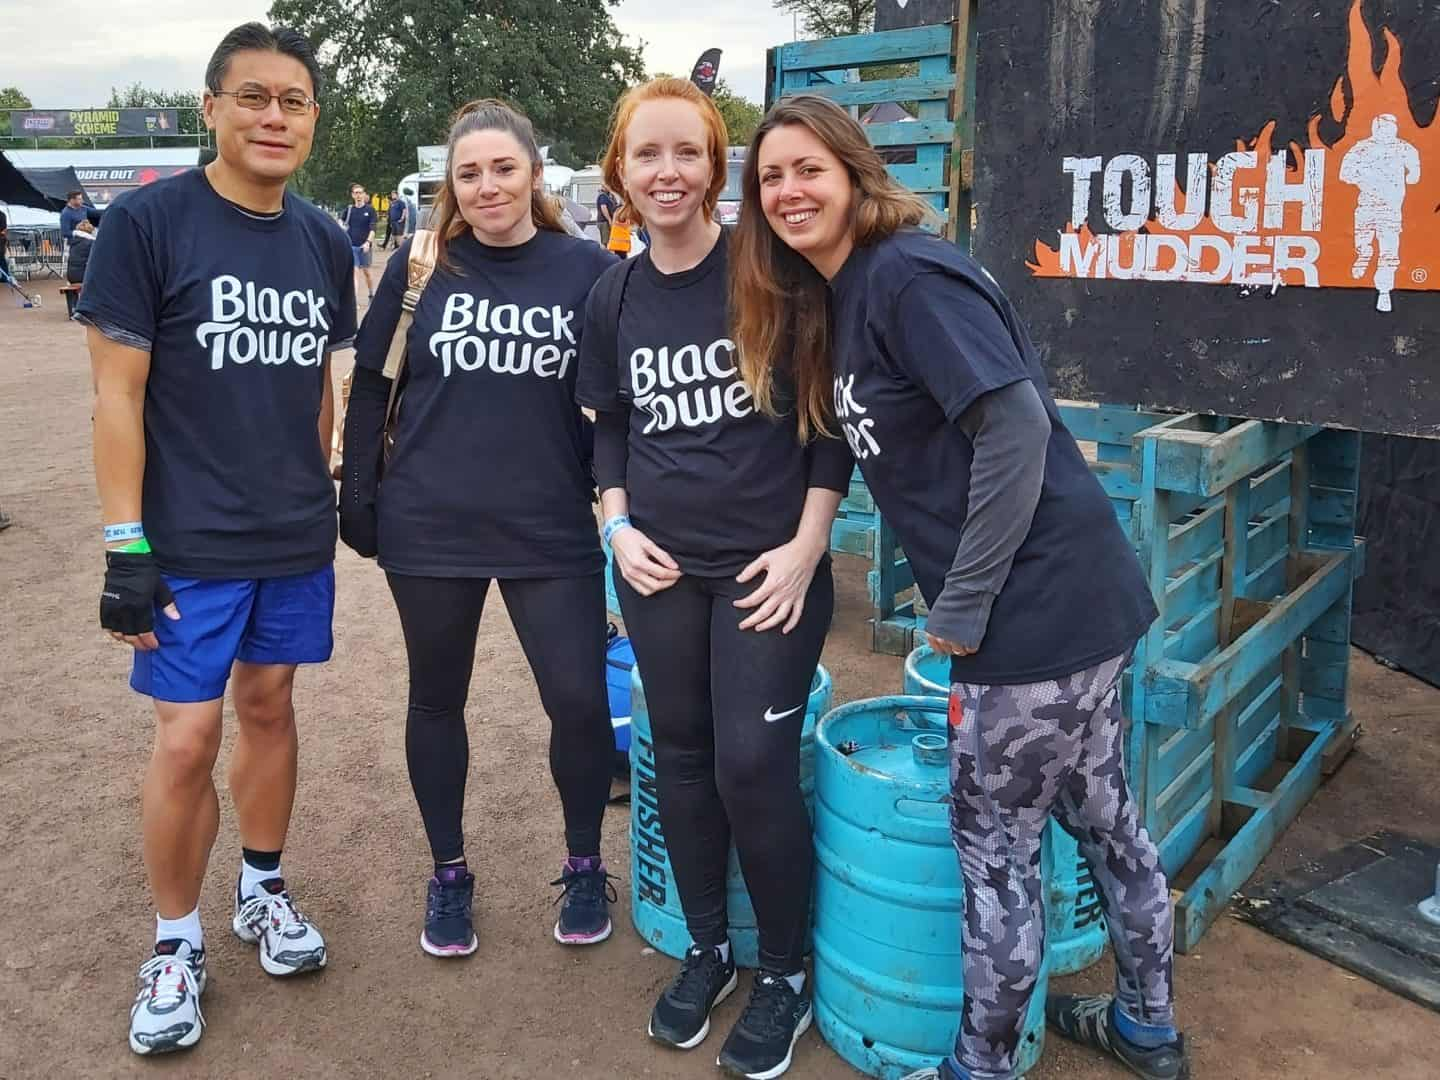 Urban Tough Mudder Clapham Common: Review